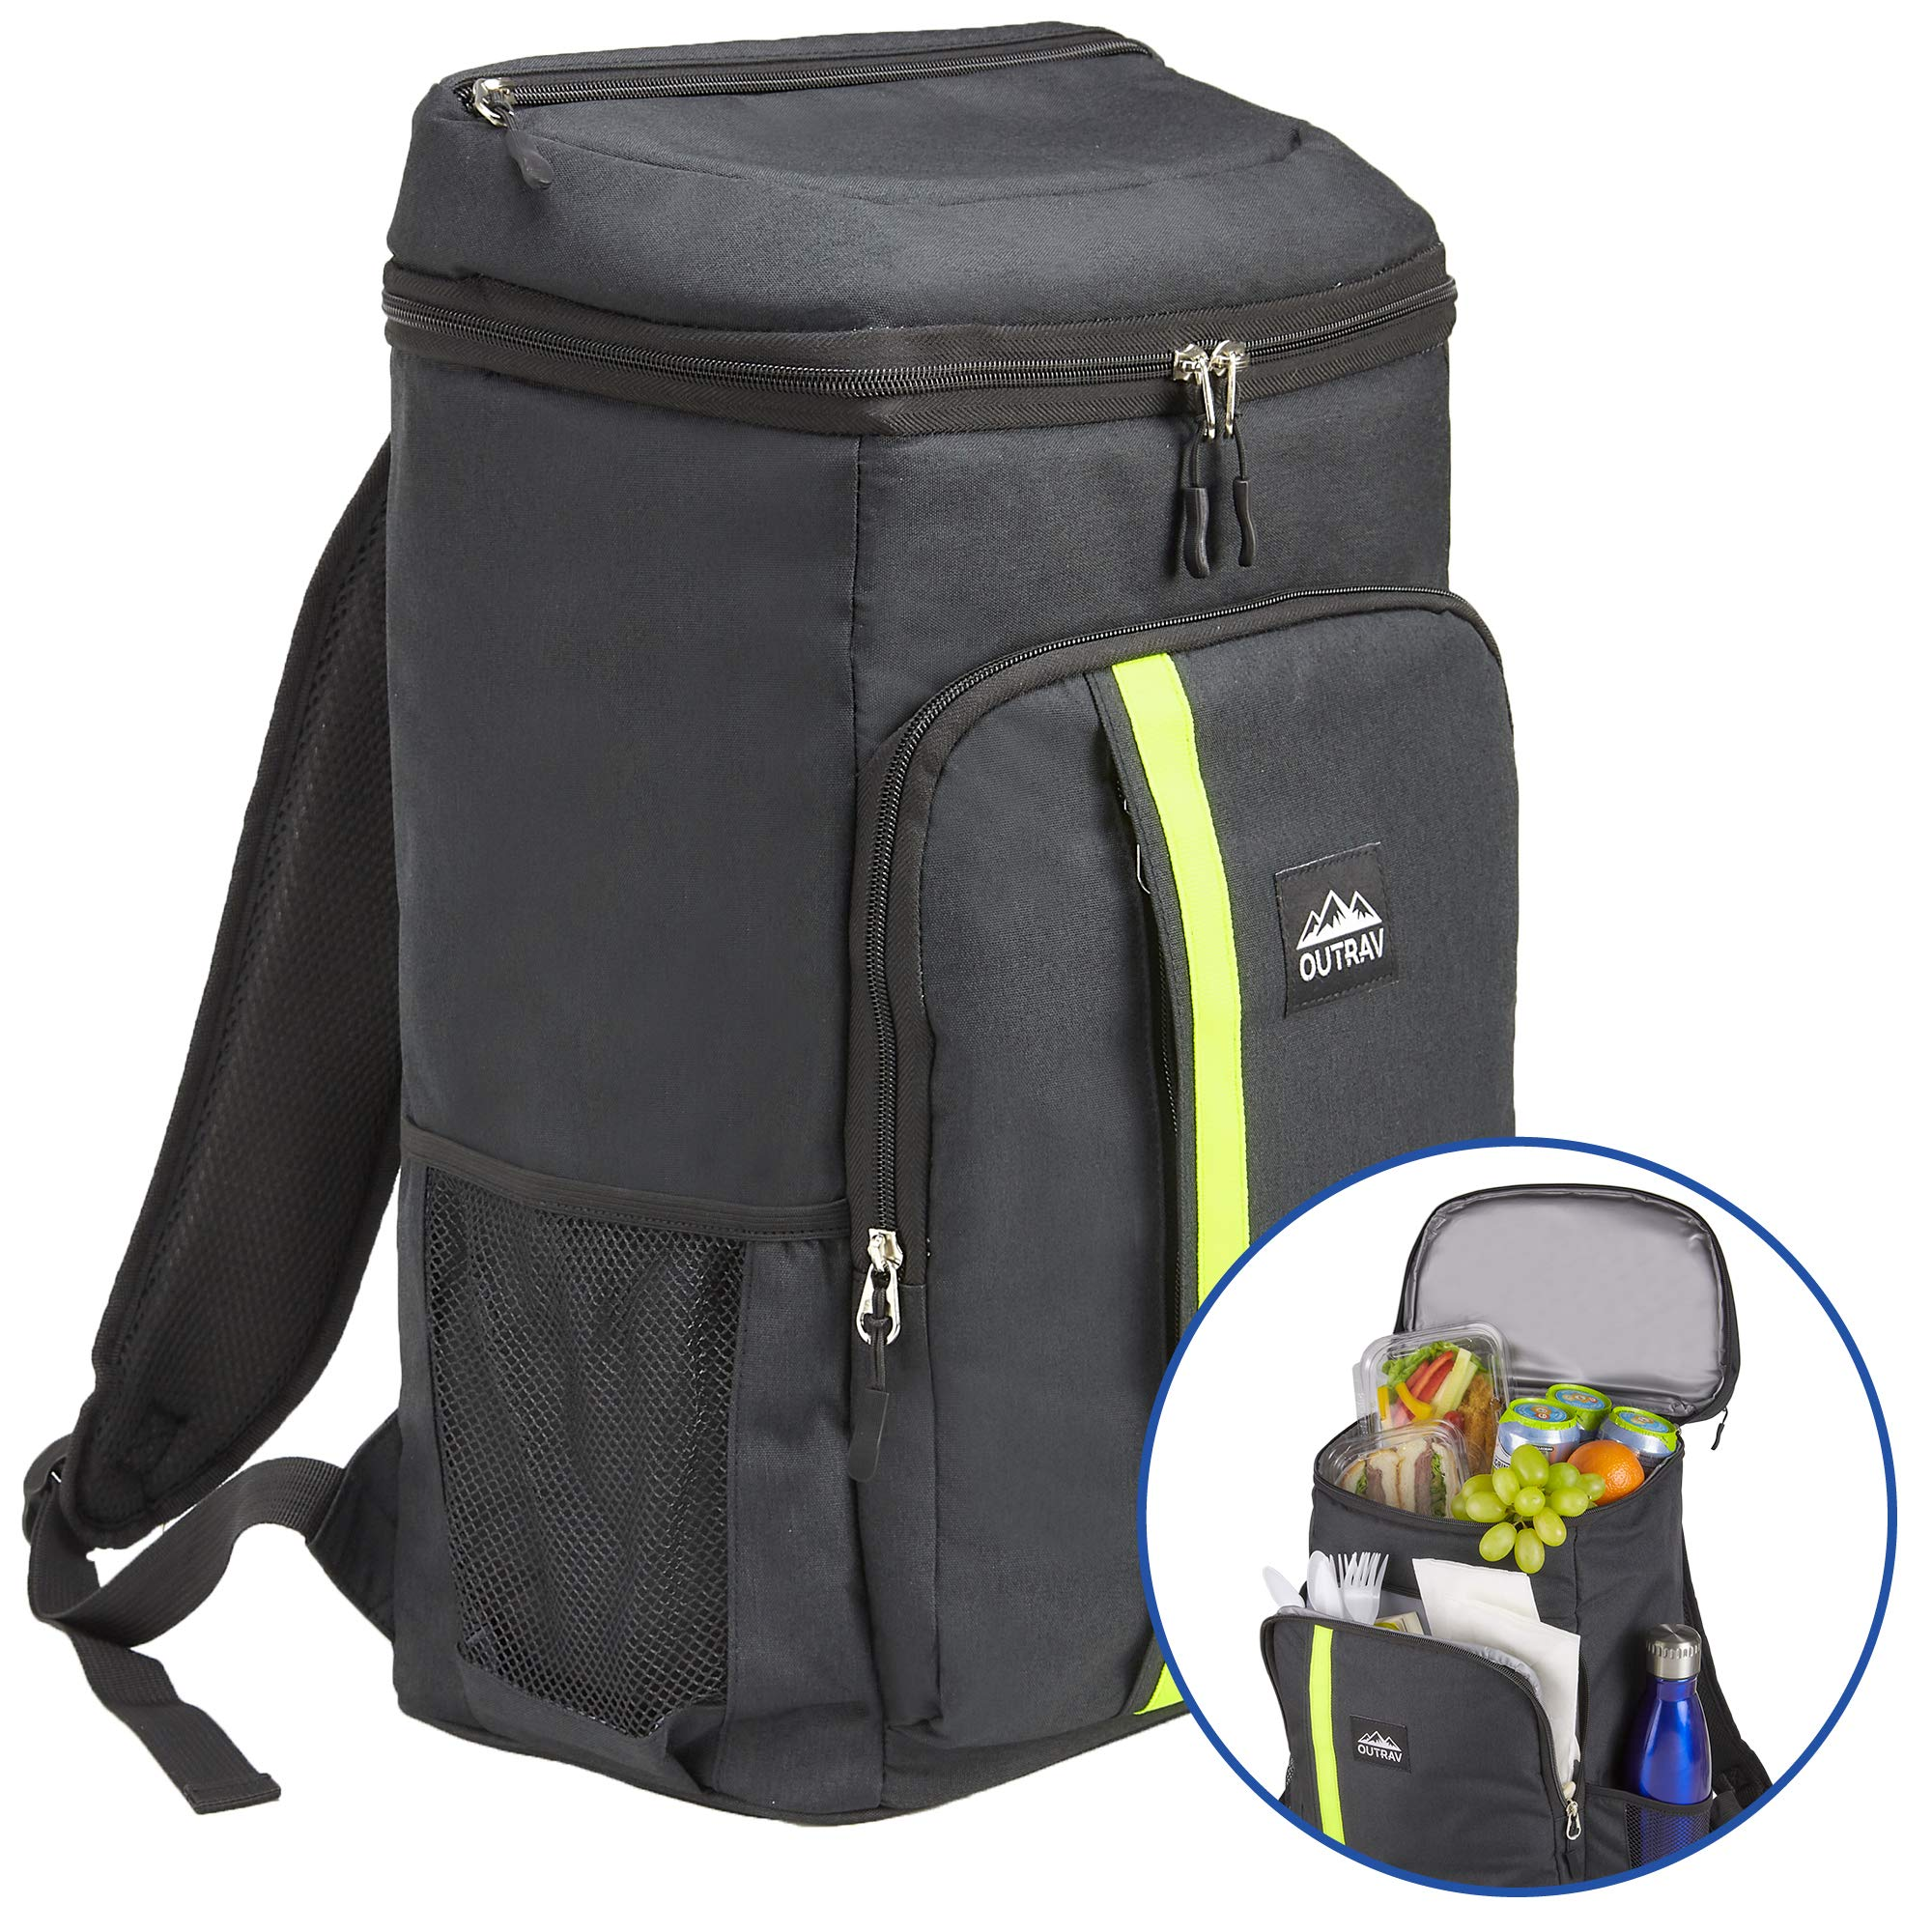 Outrav Camping Backpack Cooler - Fully Insulated Cooling Bag with Zippered Compartments, Mesh Pockets and Bottle Opener - 24 Can Capacity by Outrav